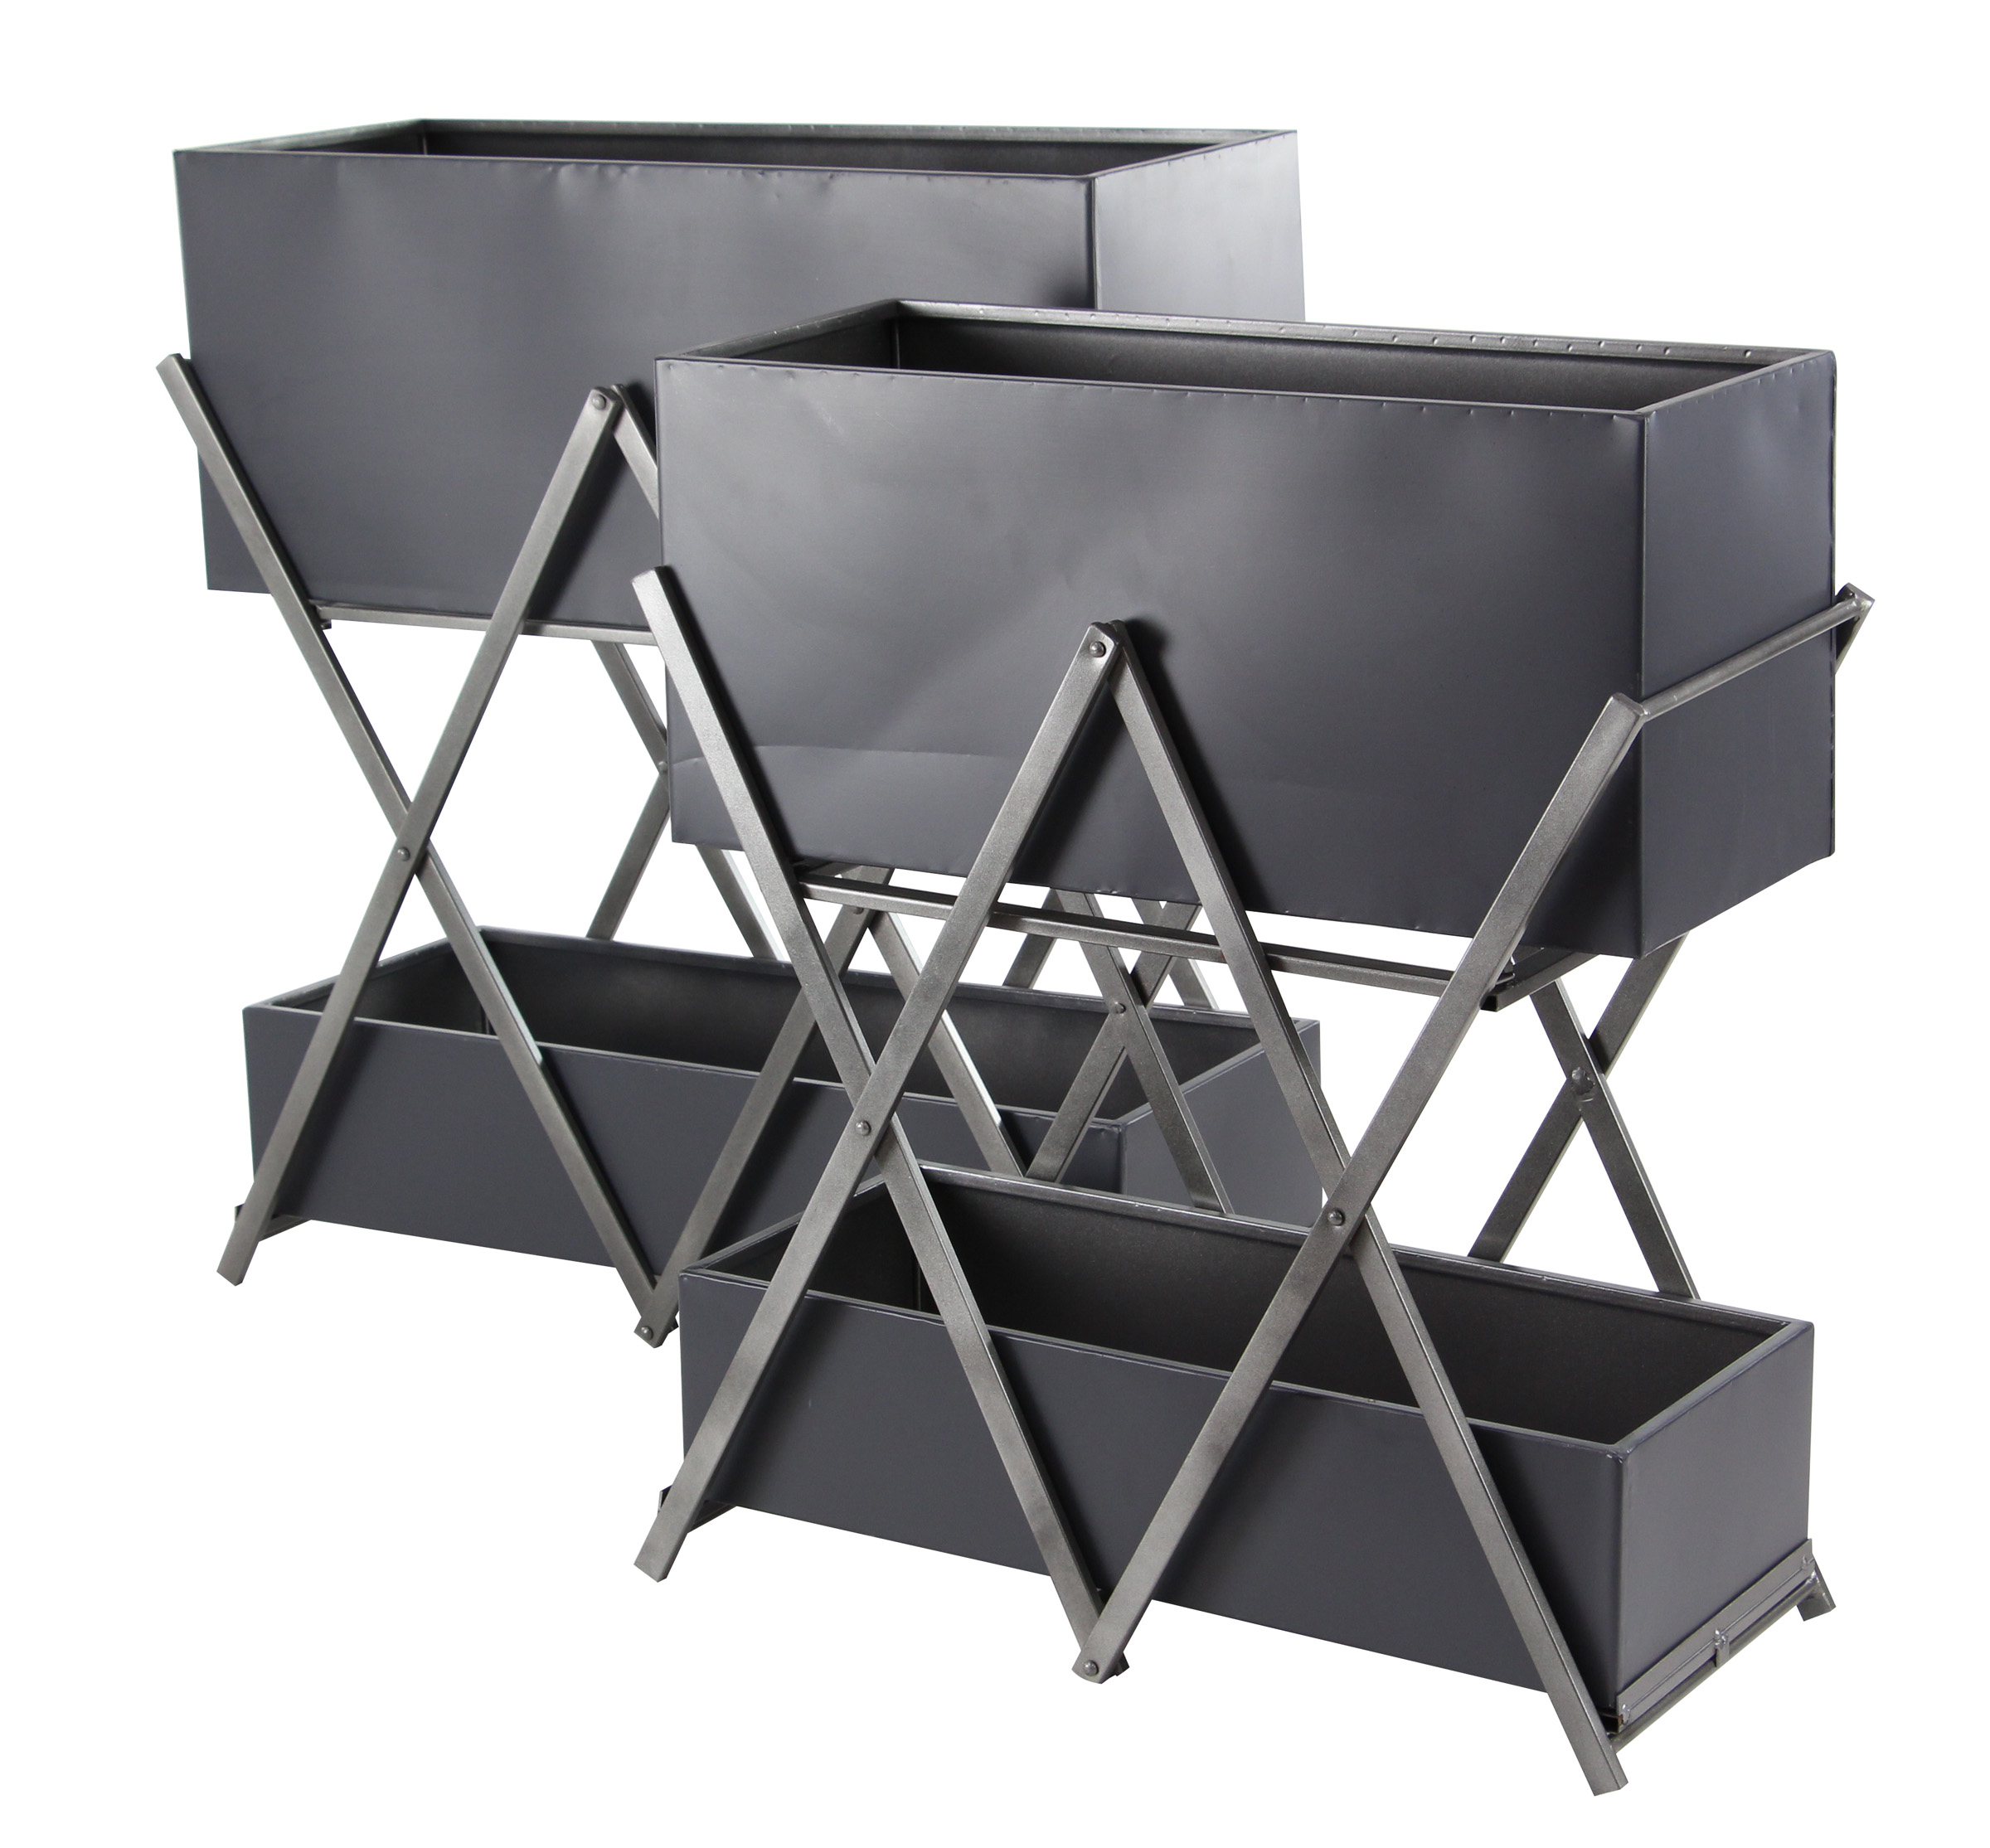 Decmode Modern 29 And 31 Inch Gray Rectangular Double-Deck Plant Stands - Set of 2